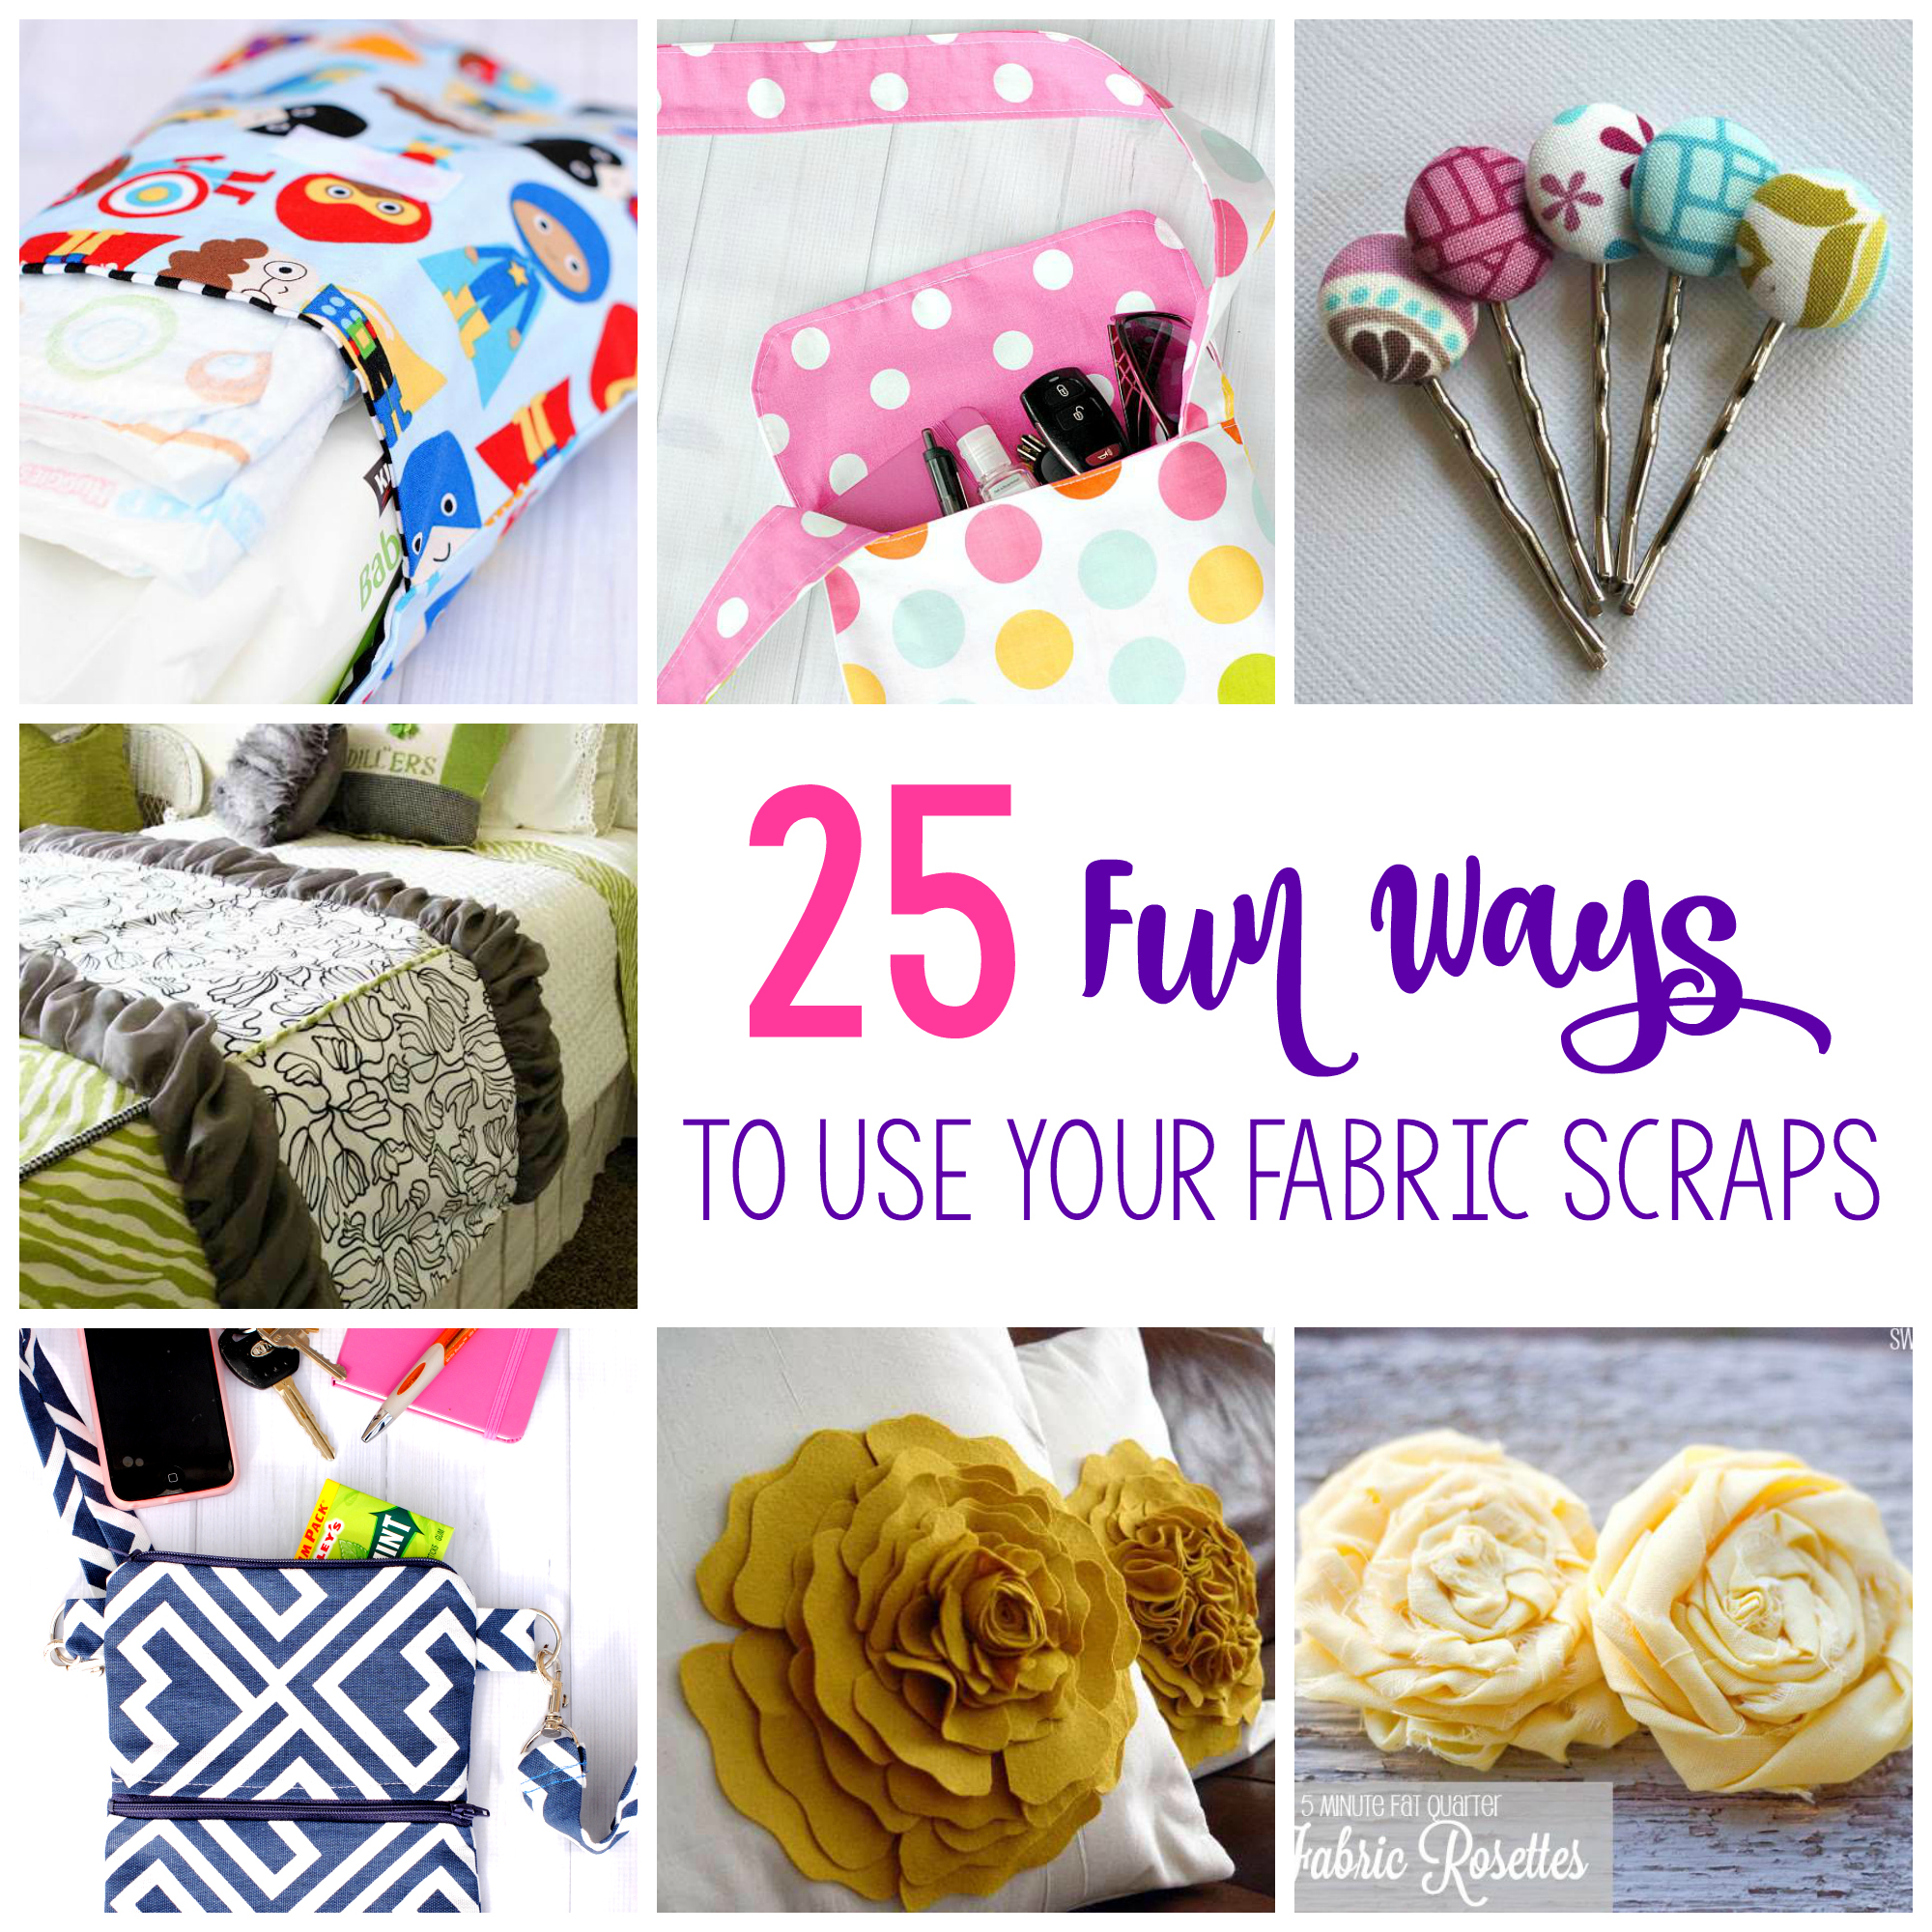 Ways to Use Fabric Scraps-Scrap Fabric Projects